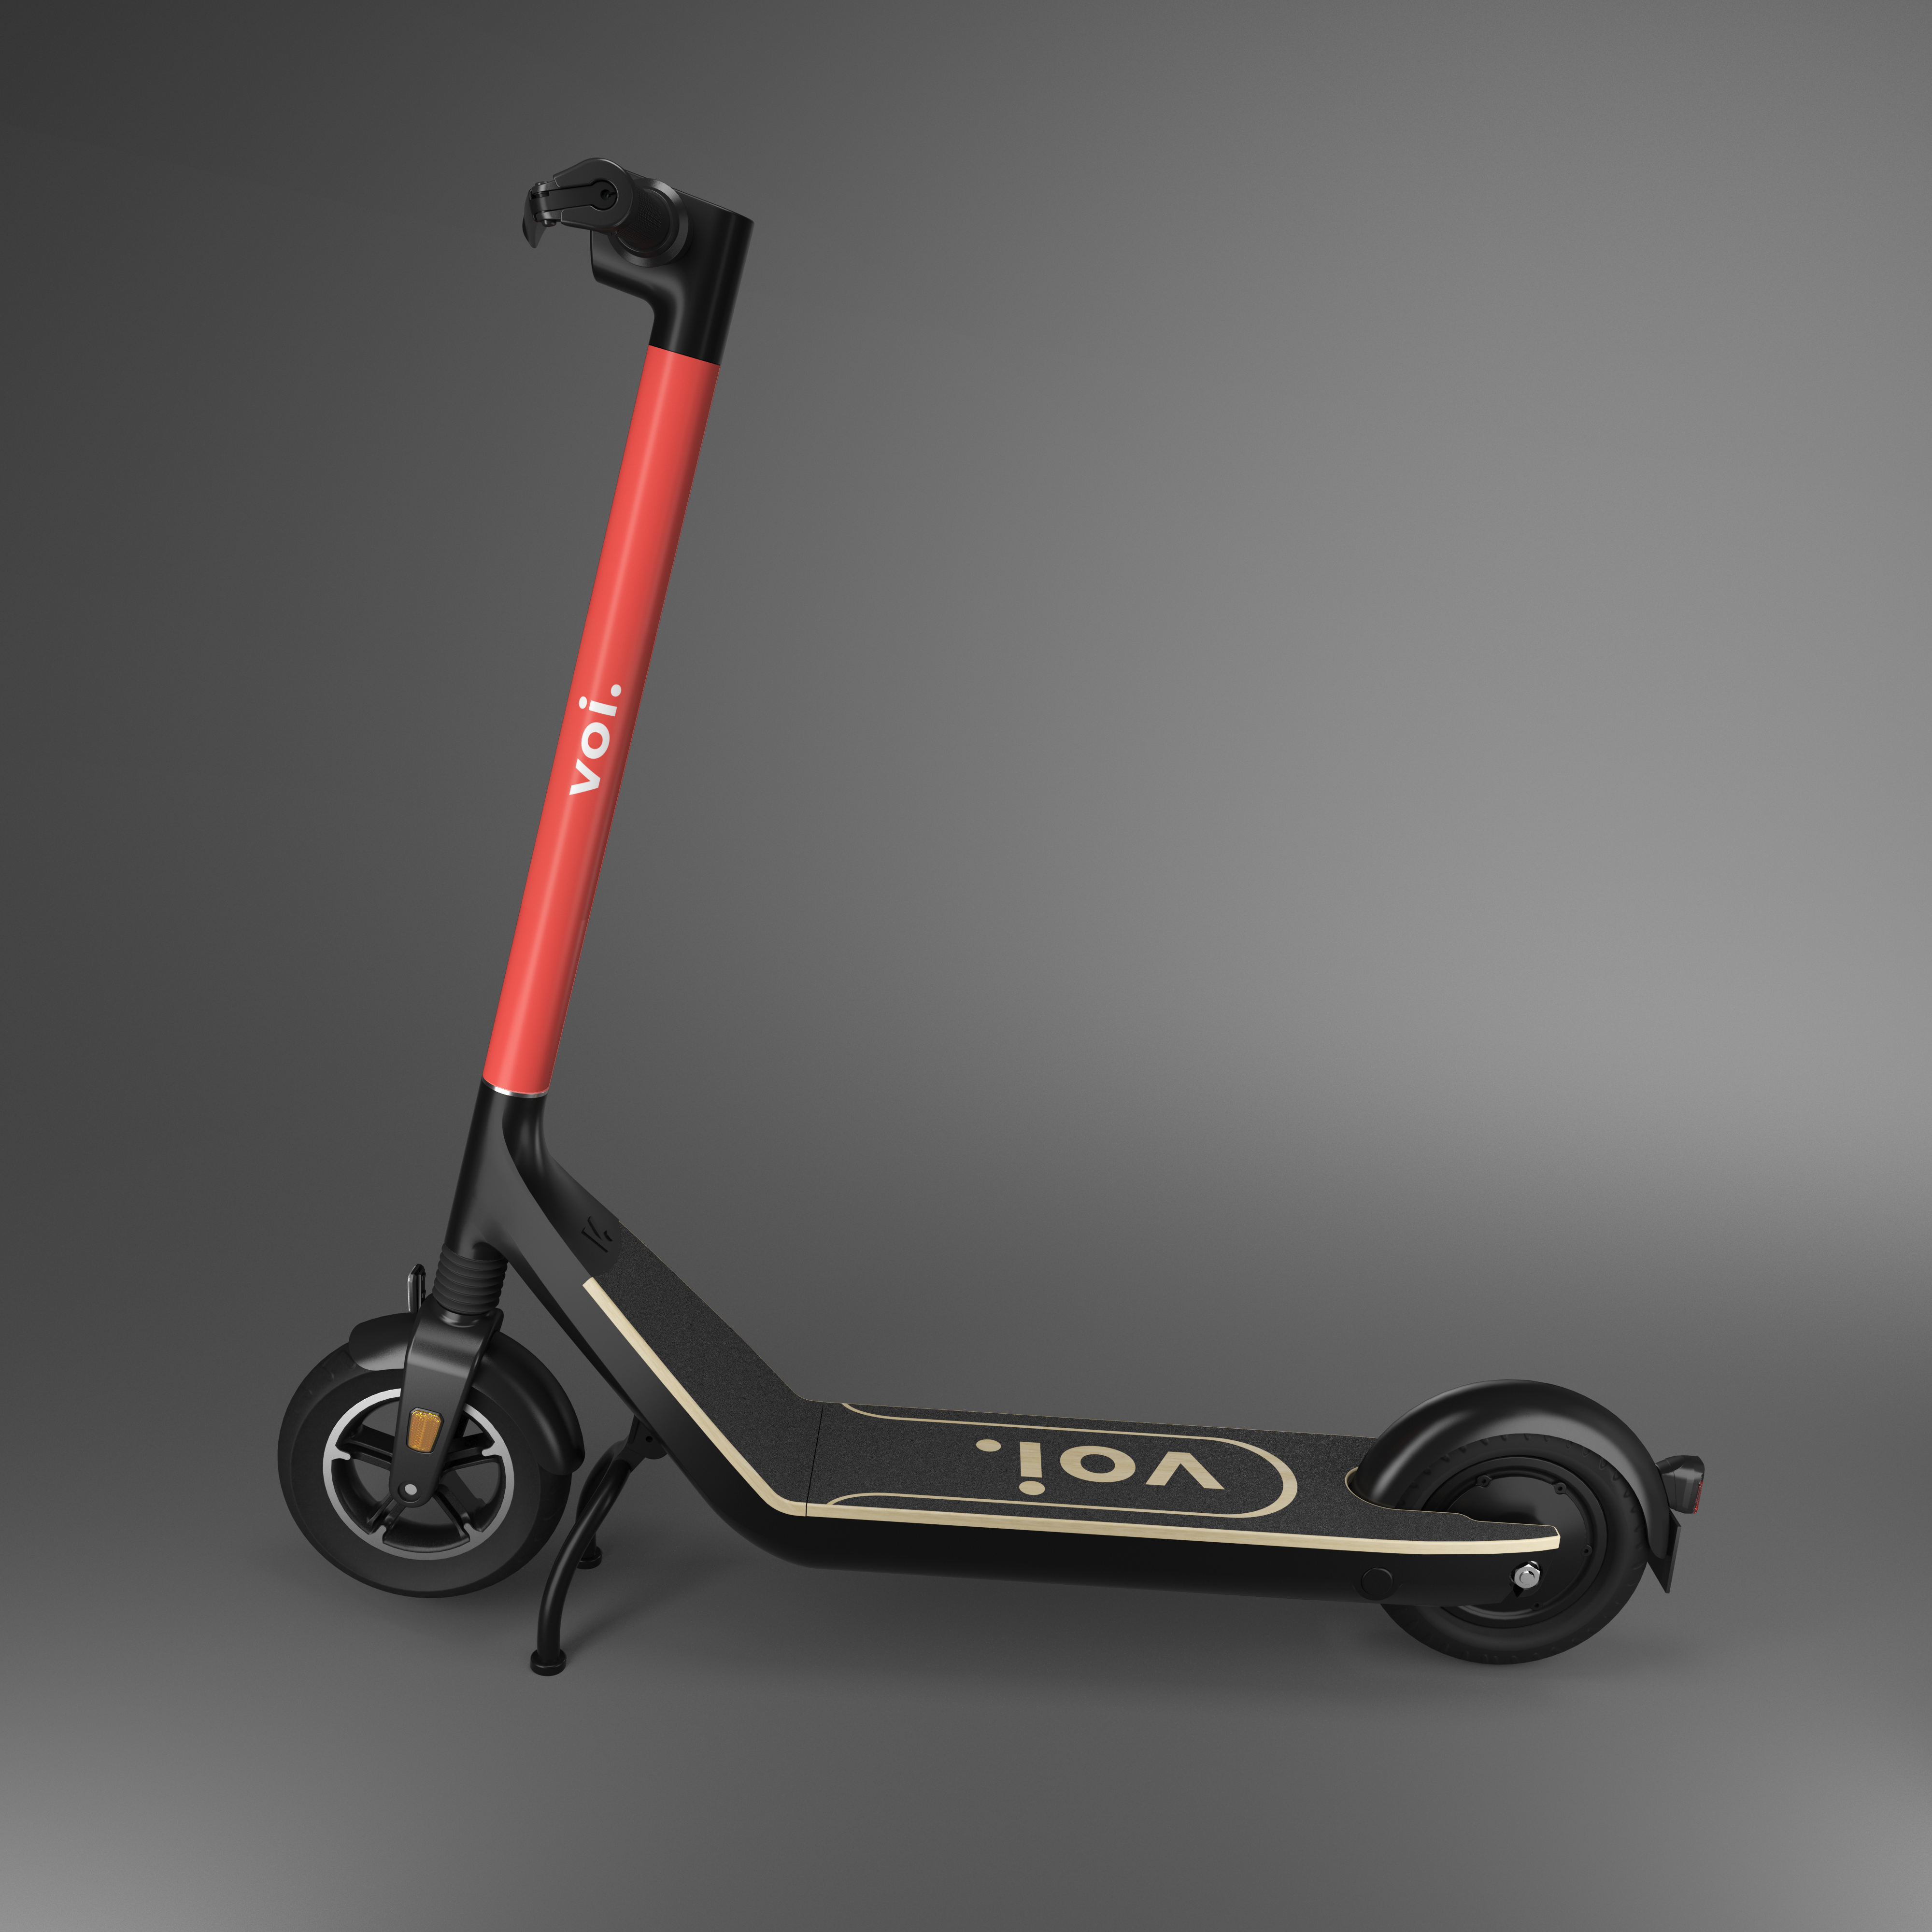 2c2519a6c7b Voi unveils 'longer-lasting' e-scooters designed to withstand rentals, and  launches its first e-bikes | TechCrunch